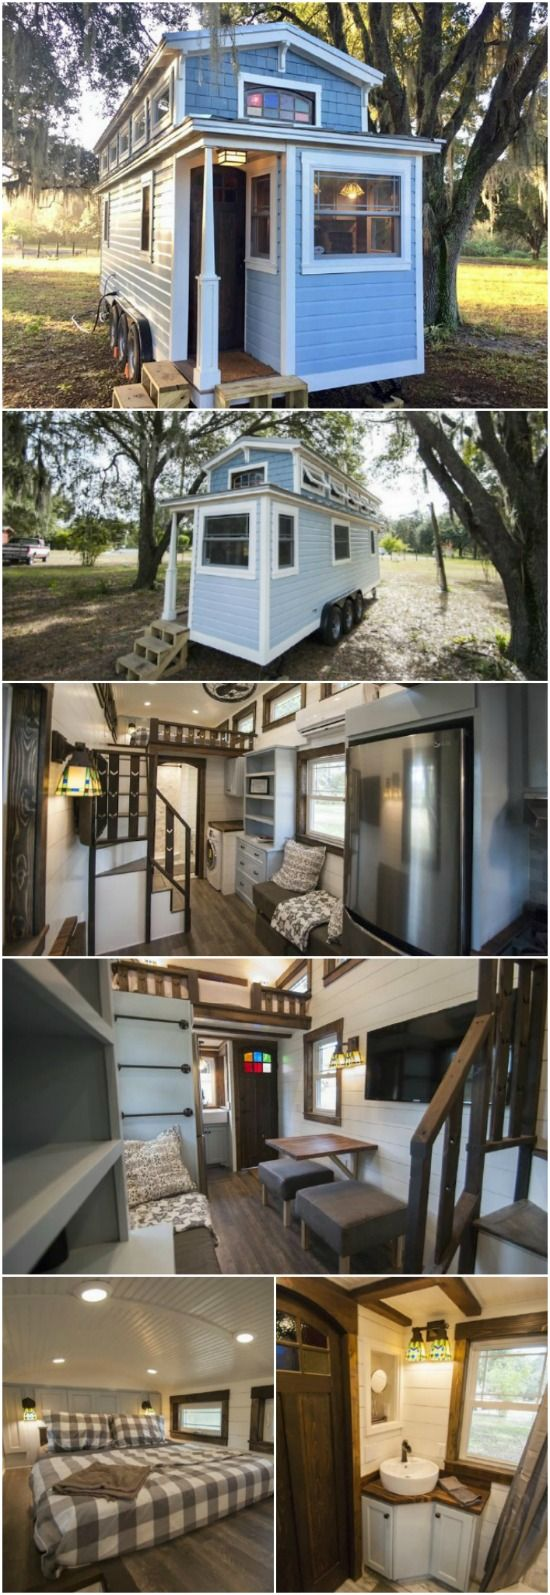 Contractor Designs and Builds Custom Tiny Home Full of Features - Adam Lehman has been a contractor for over 15 years with experience in everything imaginable from cabinets to luxurious multi-million dollar homes. His experience definitely shows in the quality of the craftsman-style tiny house that he built by himself. The immaculate tiny house called the Tiffany is now for sale for $72,000.